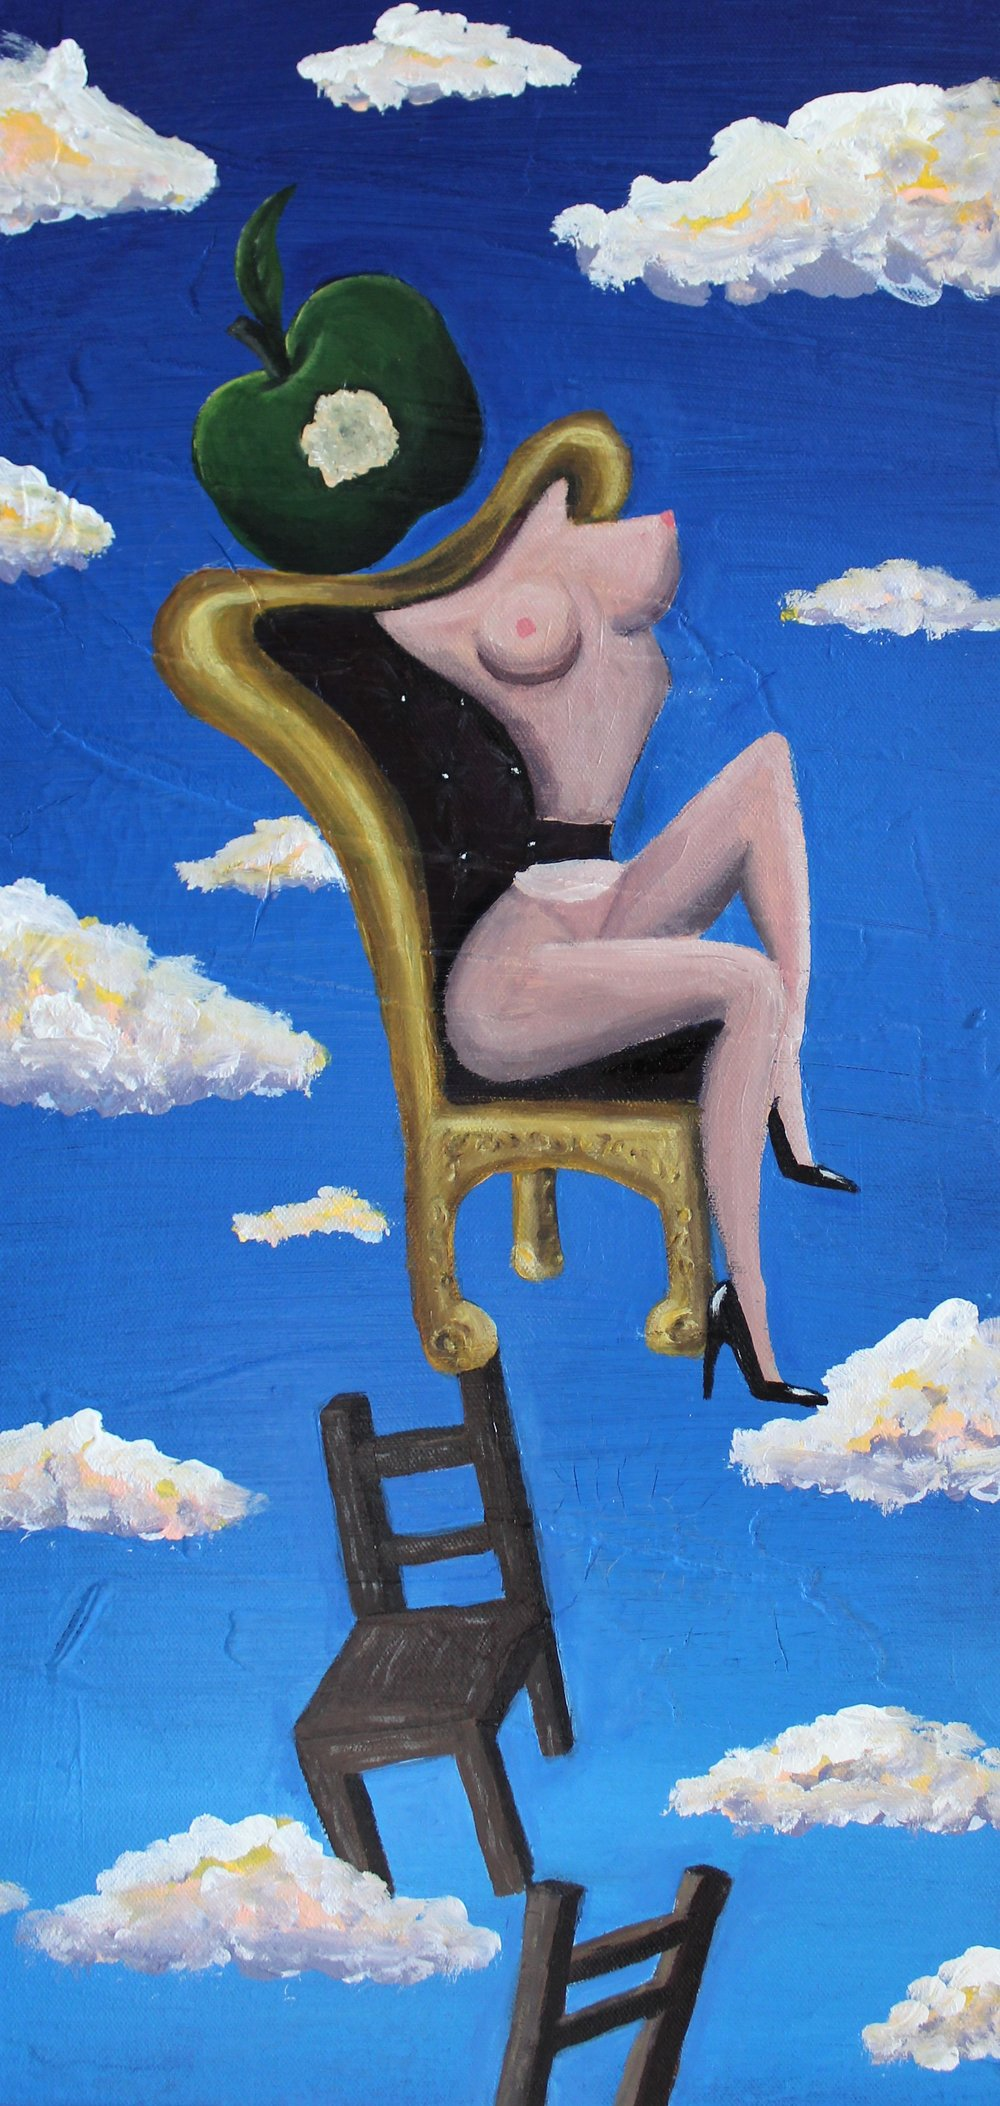 Abi Salami -Sitting Precariously II - Acrylic on canvas - 24H 12W 1.5D- 2018 - $750.jpg.jpg